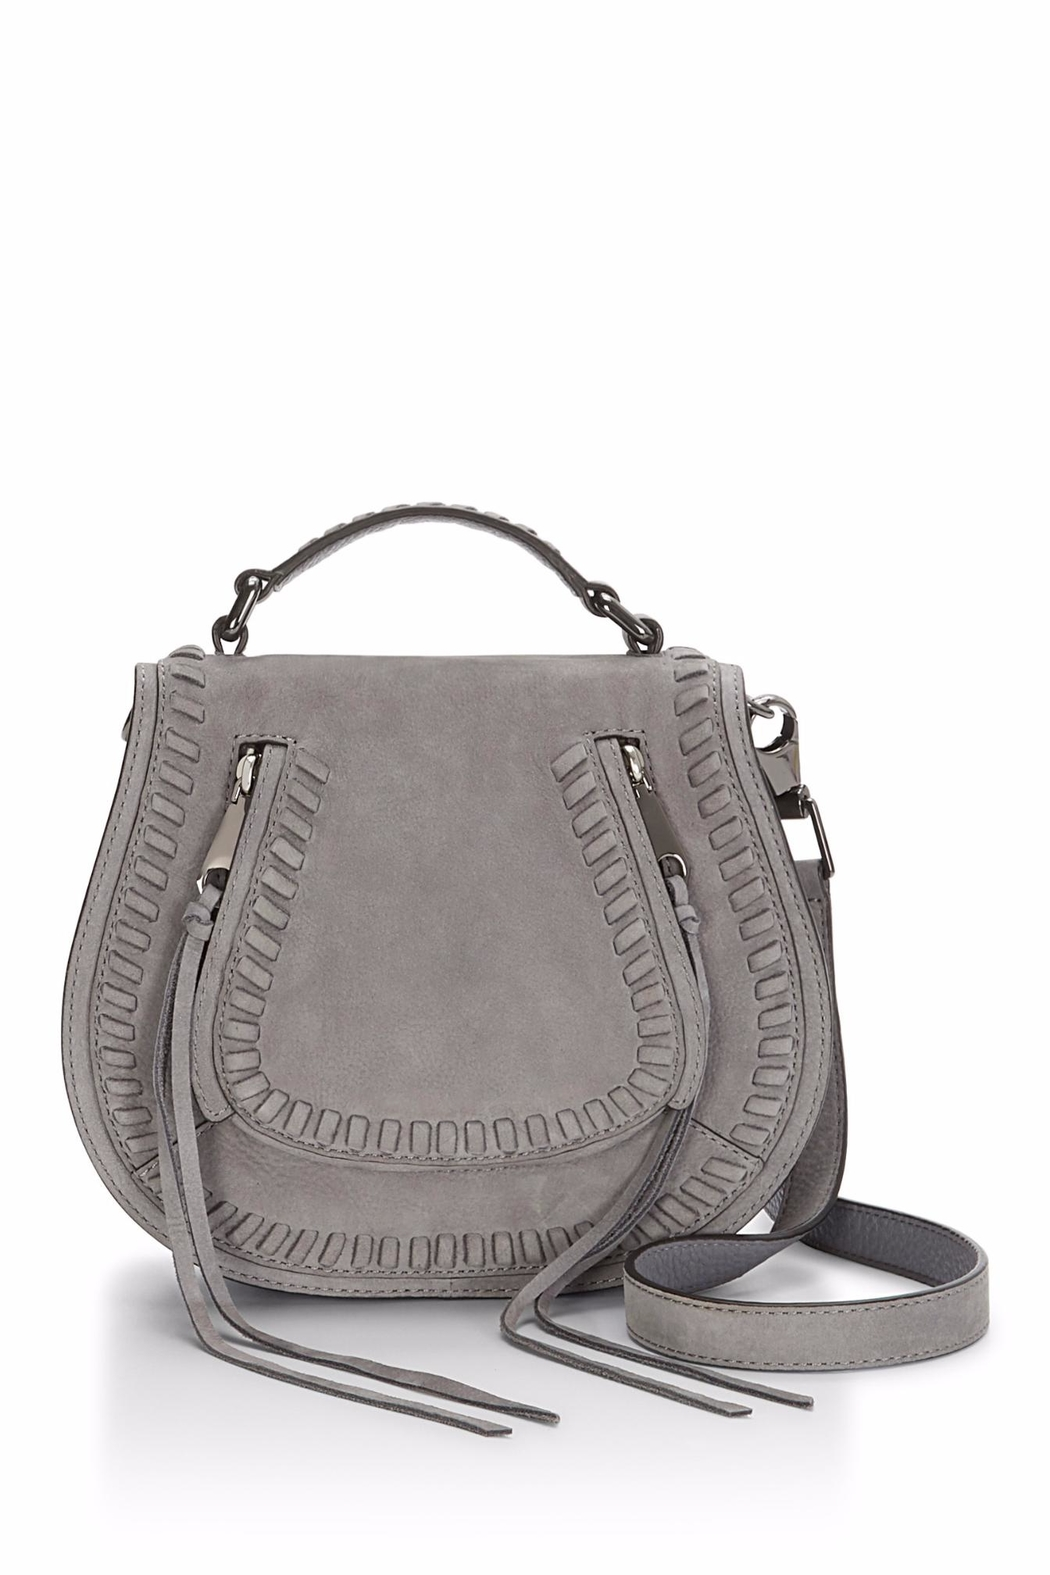 Rebecca Minkoff Small Vanity Saddle Bag - Main Image